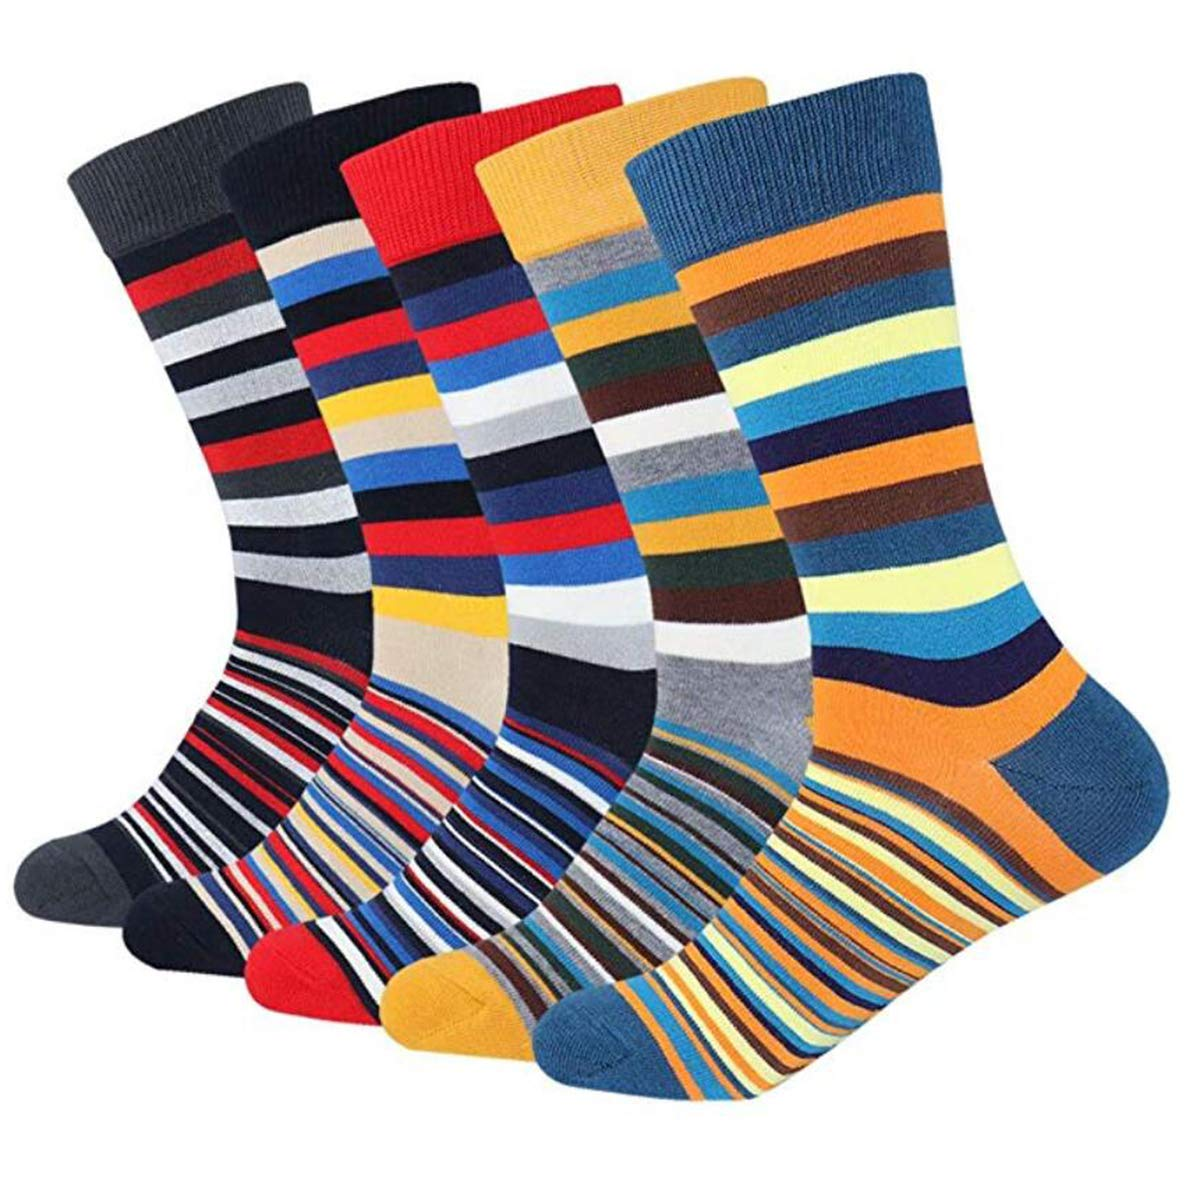 Sincere Mens Cotton Socks Dress For Men Argyle Striped Solid Ribbed Black Grey 5 Pack Sh Clothing, Shoes & Accessories Men's Clothing